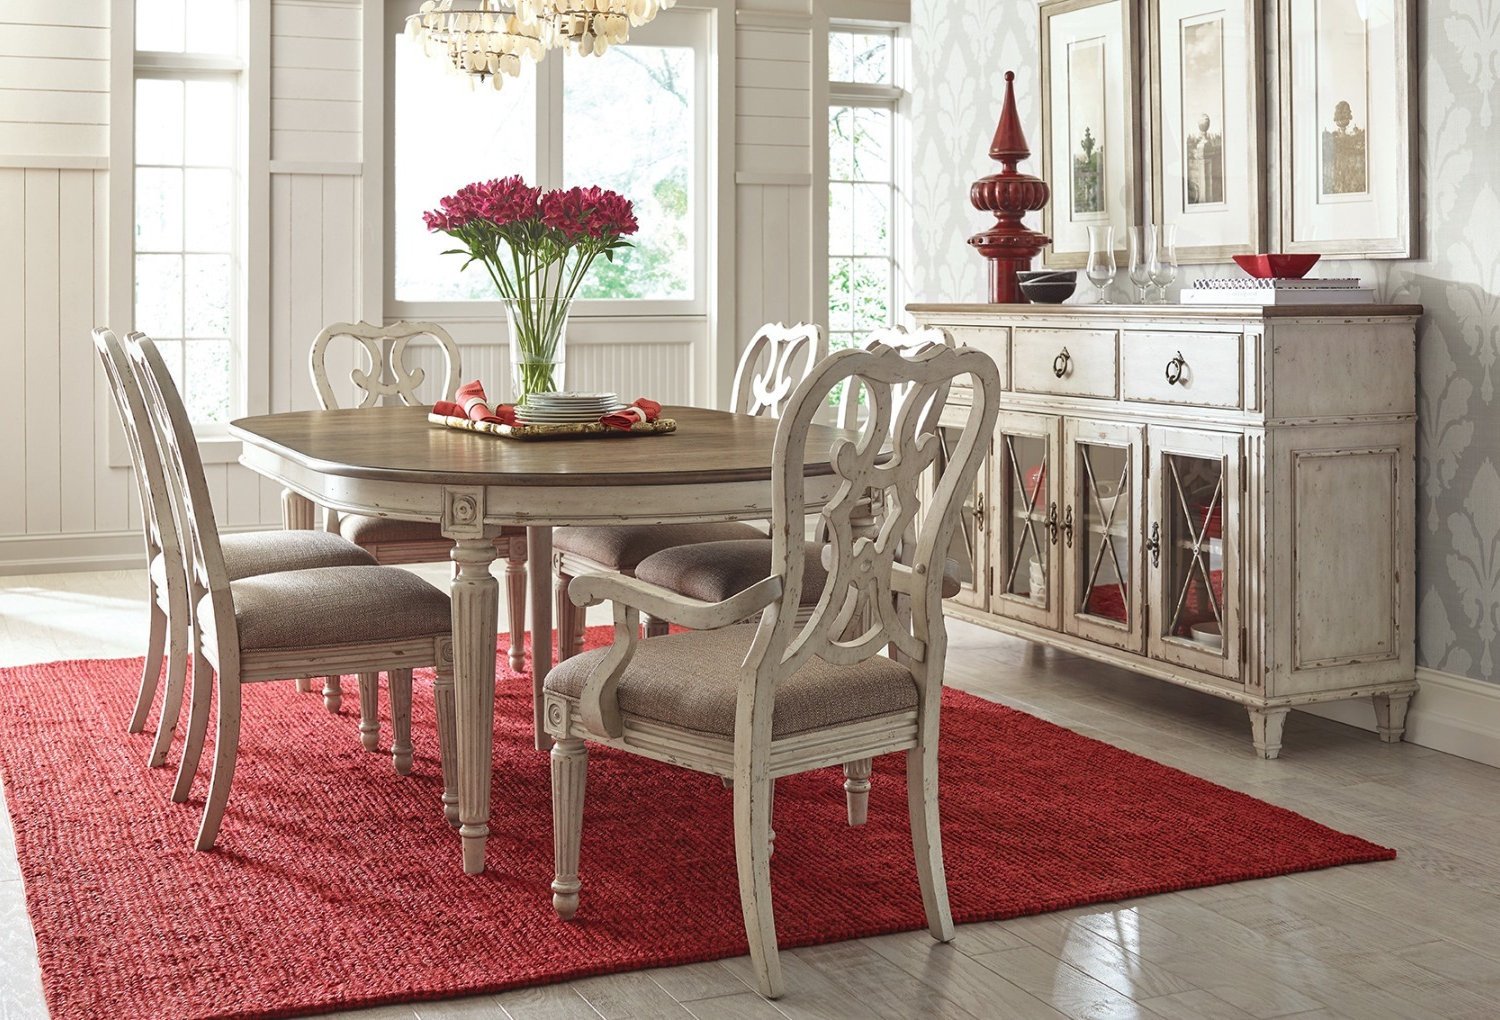 North Reading 5 Piece Dining Table Sets With Regard To Famous American Drew Furniture Of North Carolina (View 16 of 25)